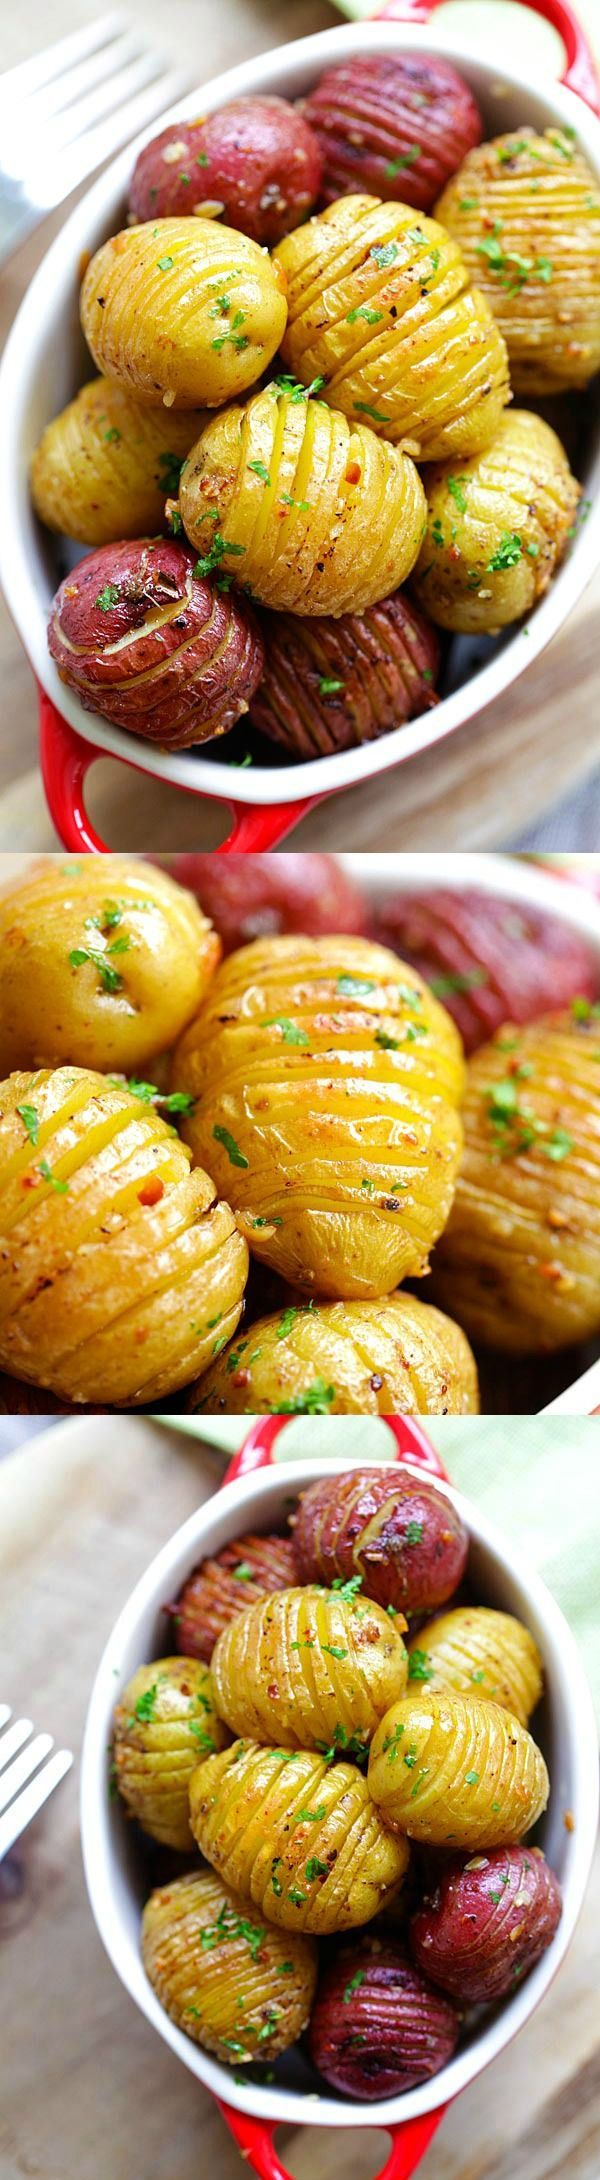 Garlic Roasted Potatoes ~ Best and easiest roasted potatoes with garlic, butter and olive oil... 10 mins prep and 40 mins in the oven